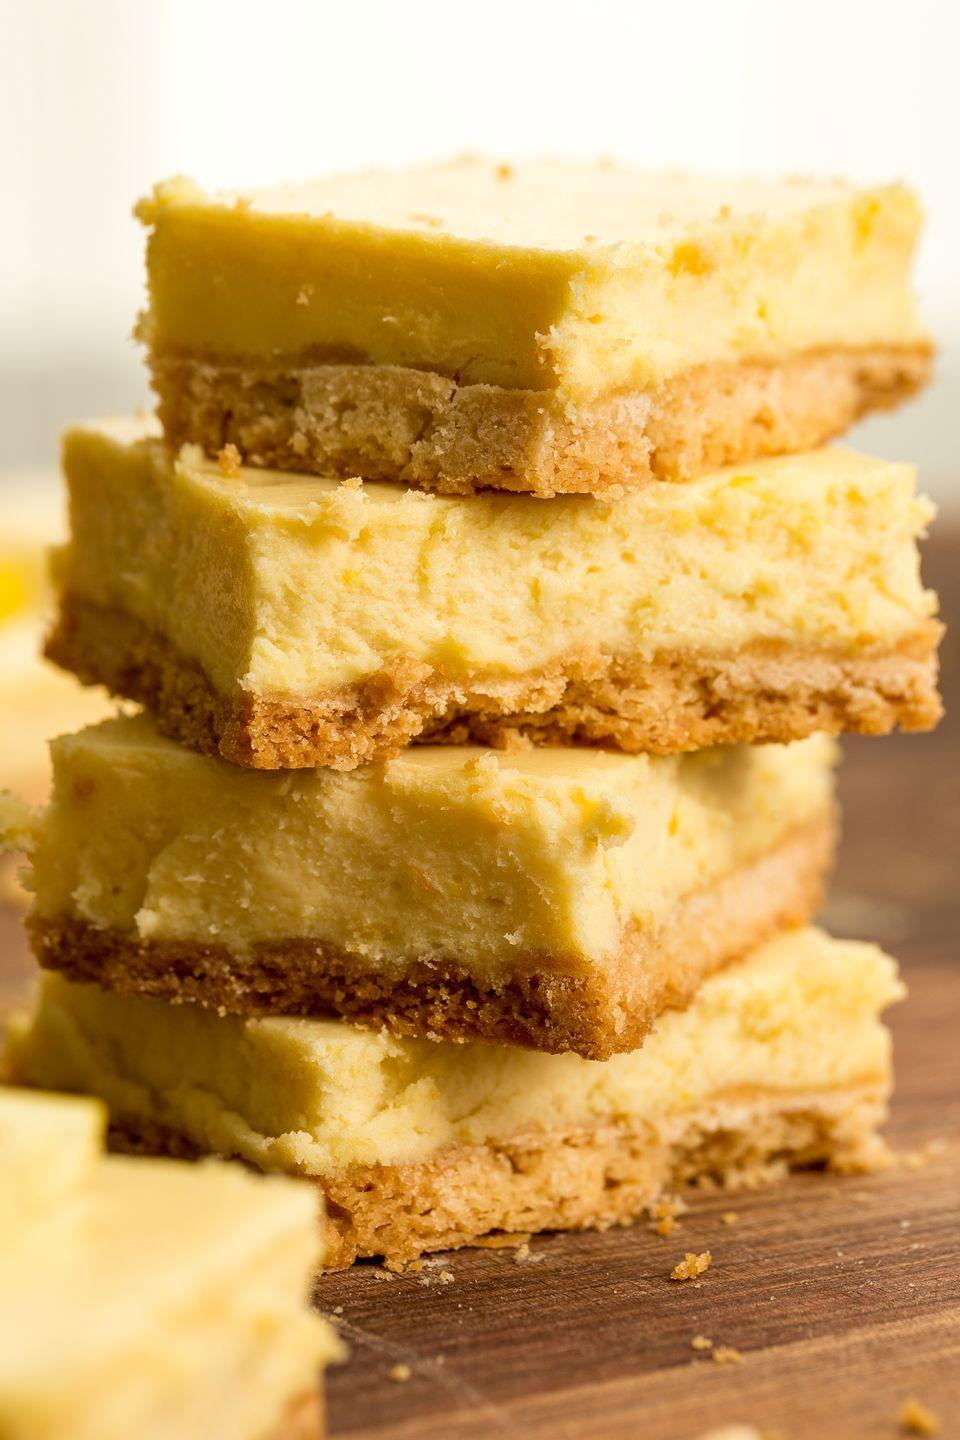 """<p>Lemon bars can only stand to get better with the addition of cheesecake. But then again, doesn't everything? </p><p>Get the recipe from <a href=""""https://www.delish.com/cooking/recipes/a46336/lemon-cheesecake-bars/"""" rel=""""nofollow noopener"""" target=""""_blank"""" data-ylk=""""slk:Delish"""" class=""""link rapid-noclick-resp"""">Delish</a>.</p>"""